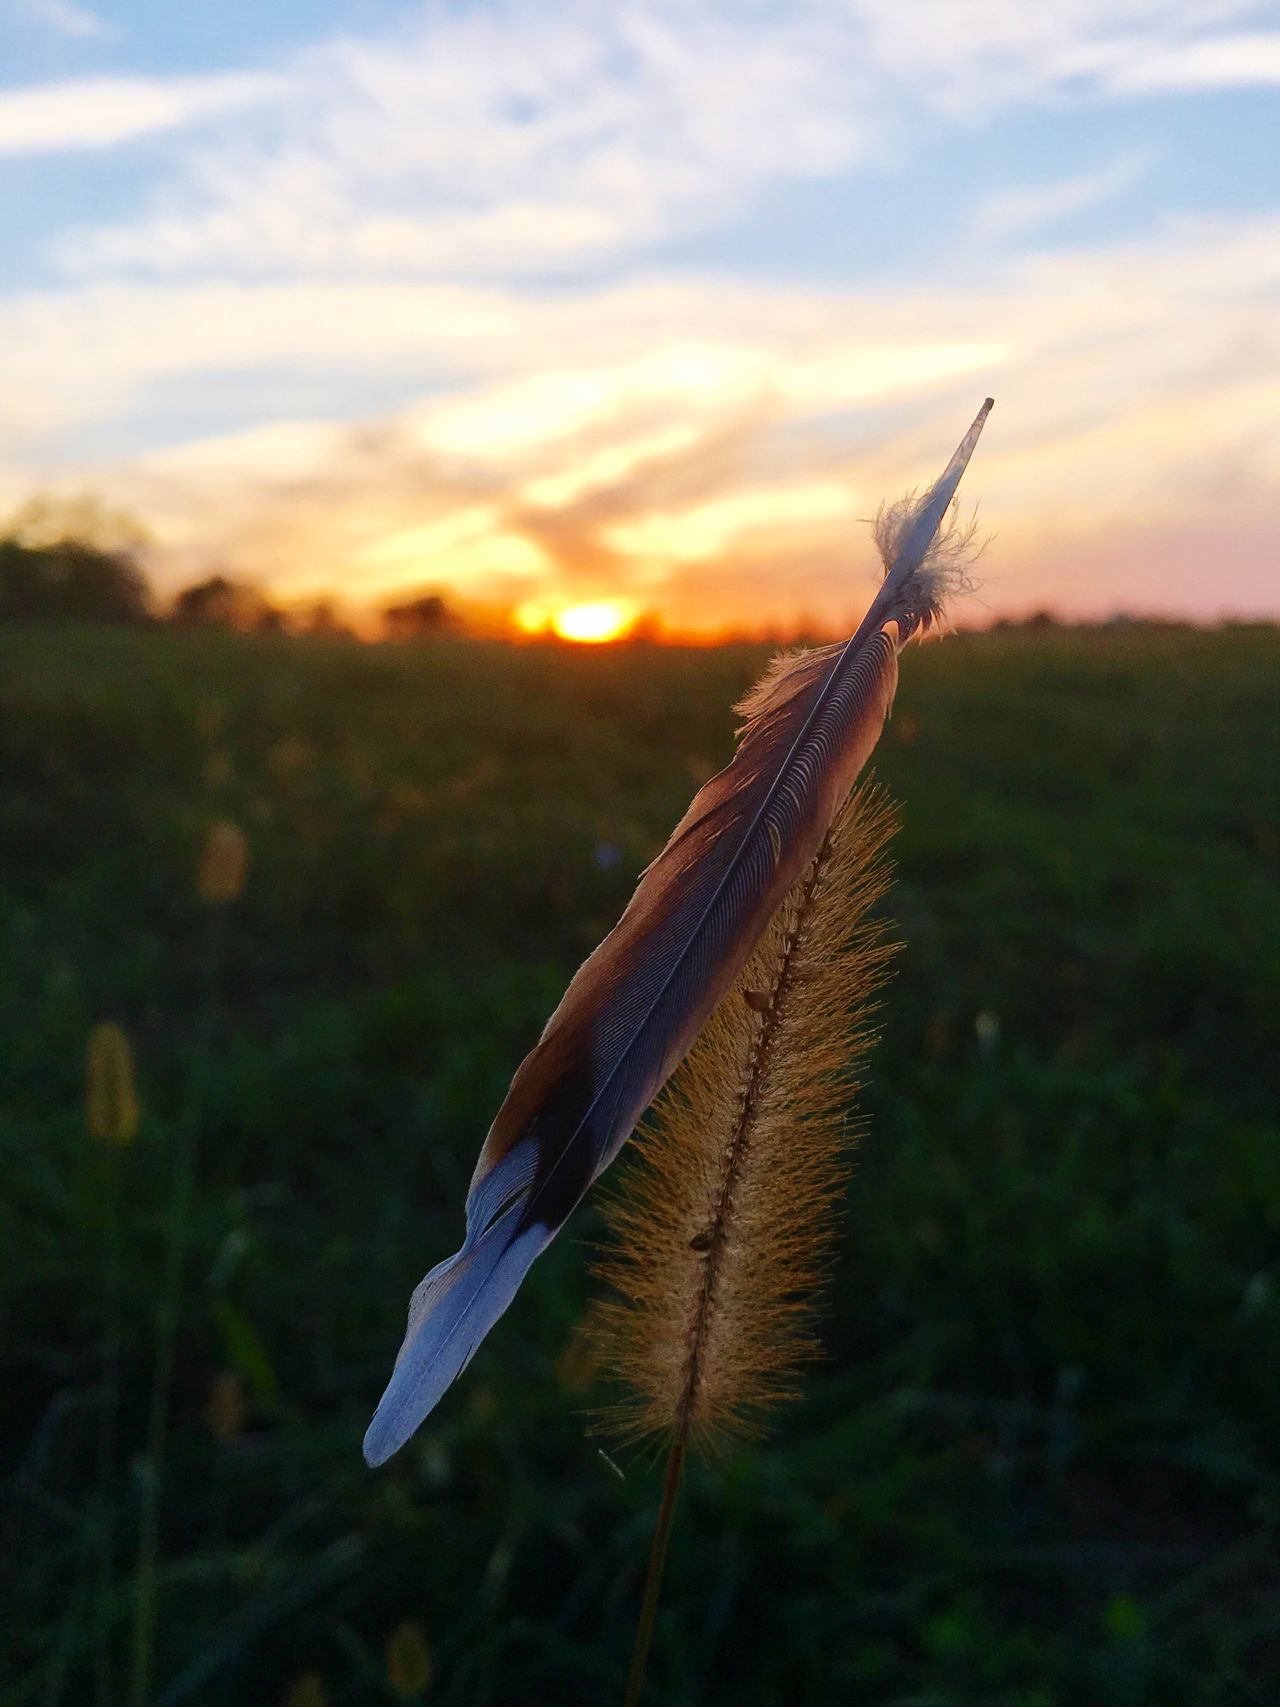 Sunset Nature One Animal Focus On Foreground Close-up Sky No People Field Outdoors Beauty In Nature Animal Themes Bird Animals In The Wild Fragility Day Naturelovers Nature_collection Nature_perfection Outdoor Photography Nature Photography Beauty In Nature Grass Sunset_collection Sun Feather